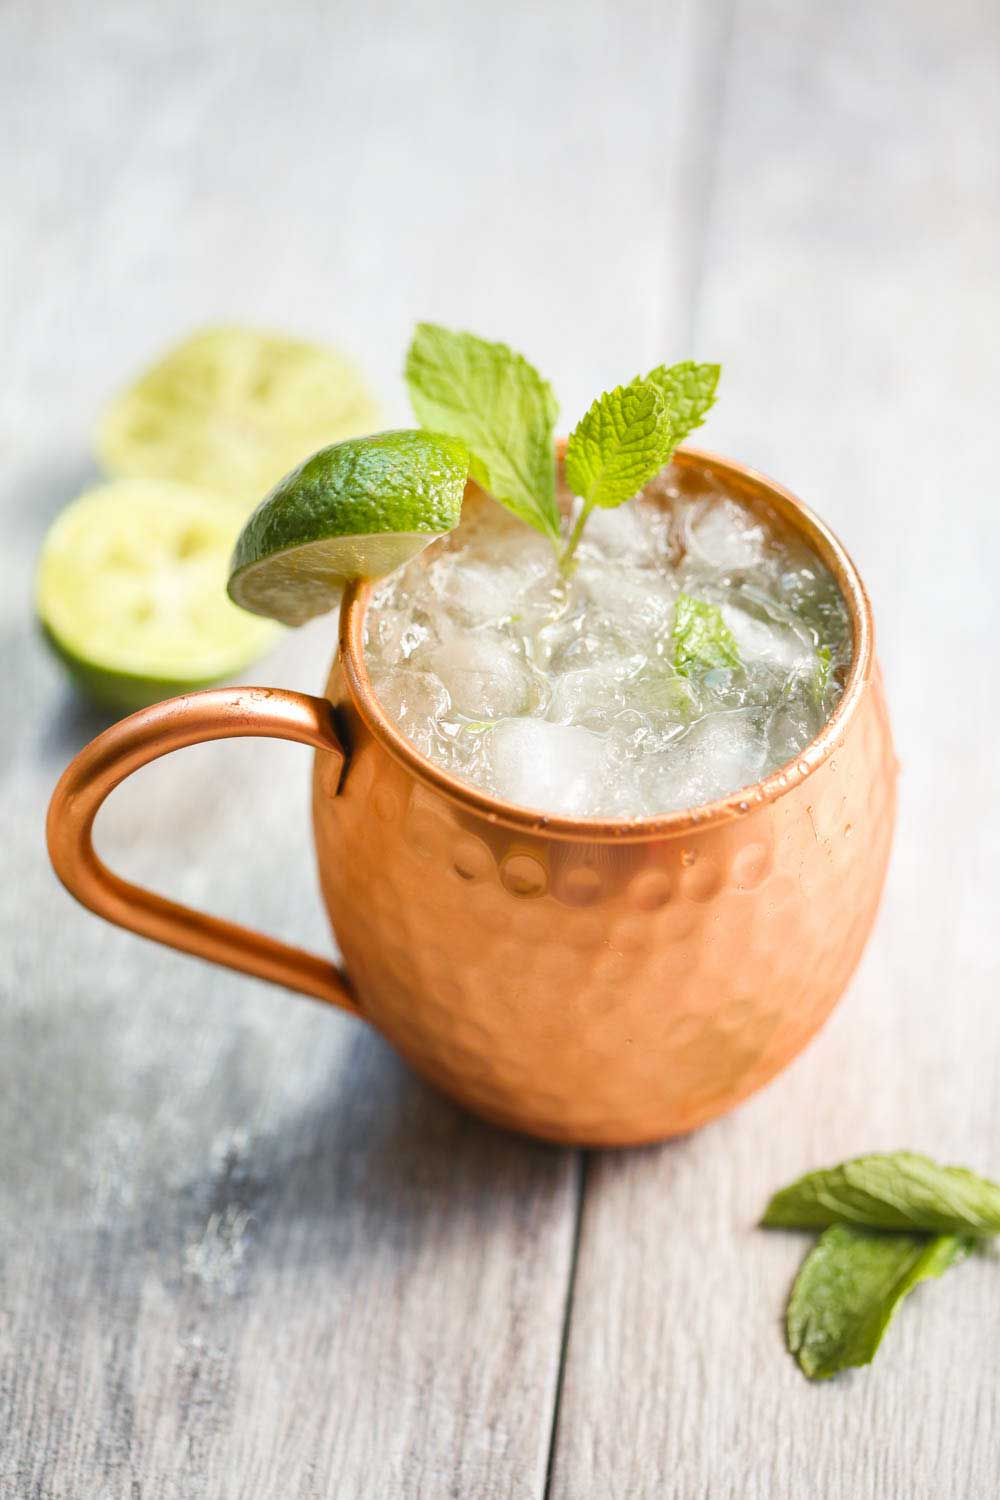 Moscow Mule from Our Best Bites